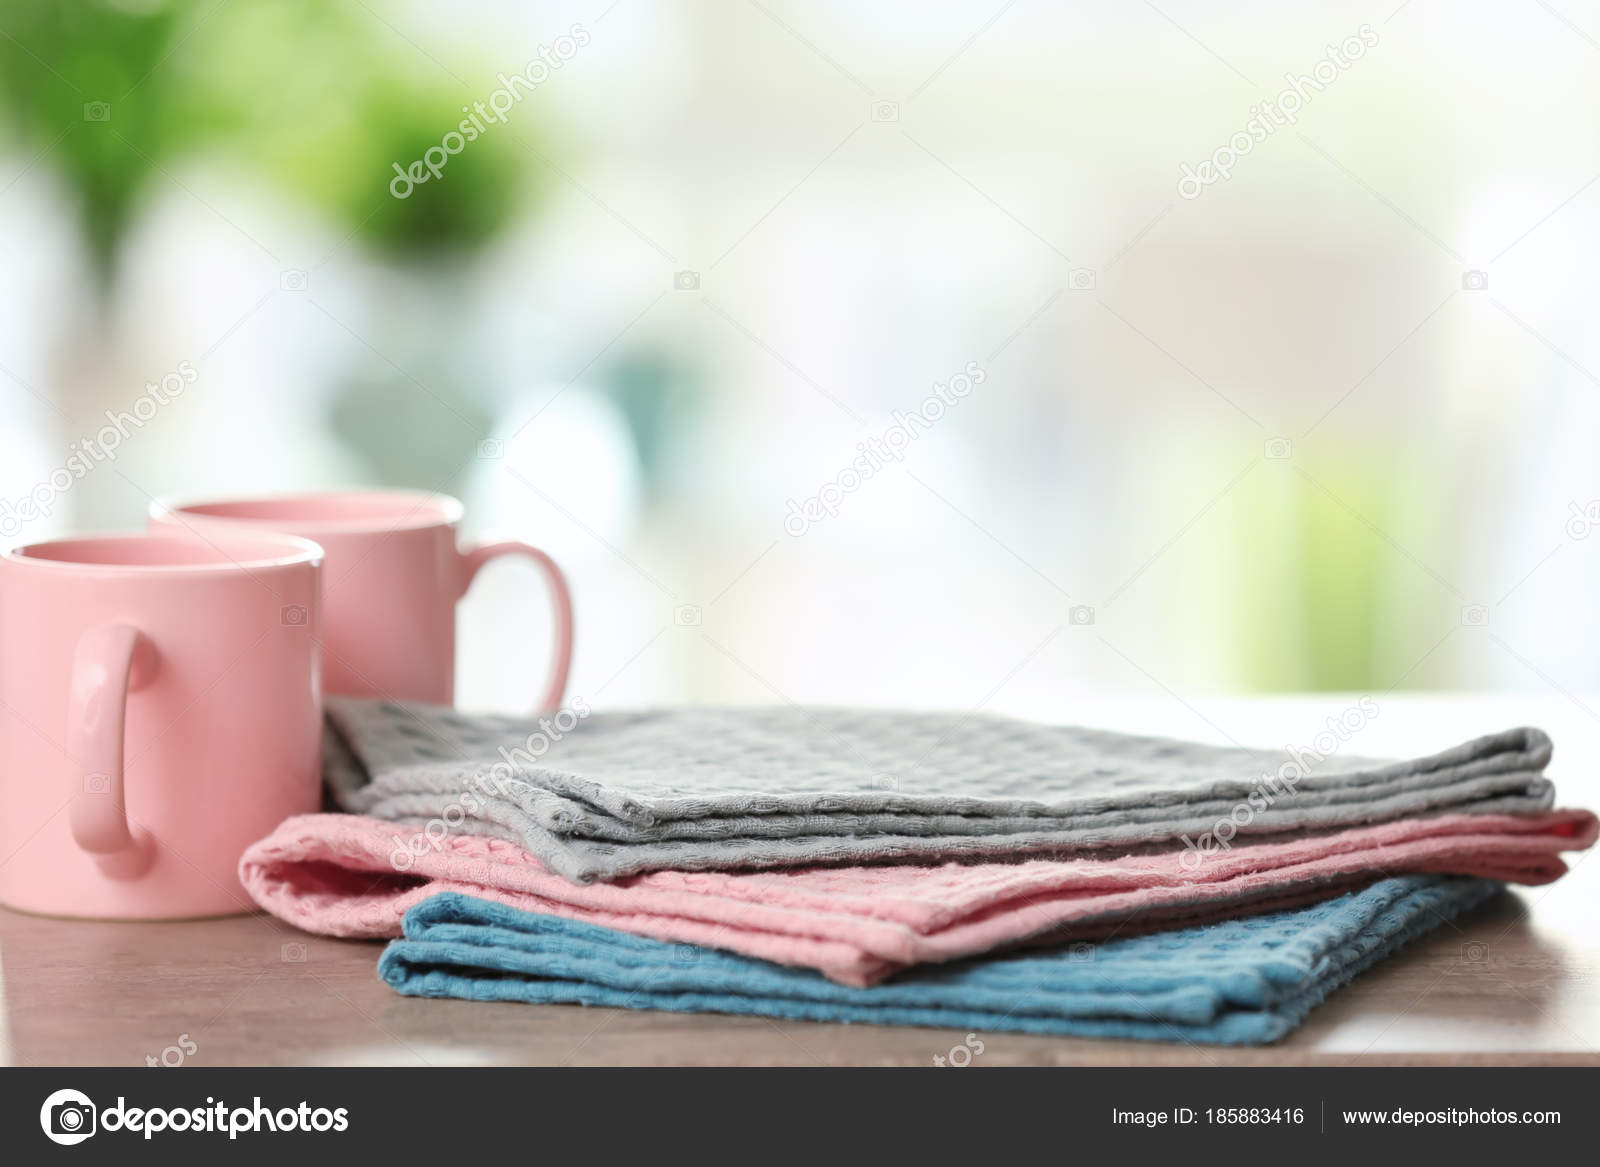 Clean kitchen towels on table — Stock Photo © belchonock #185883416